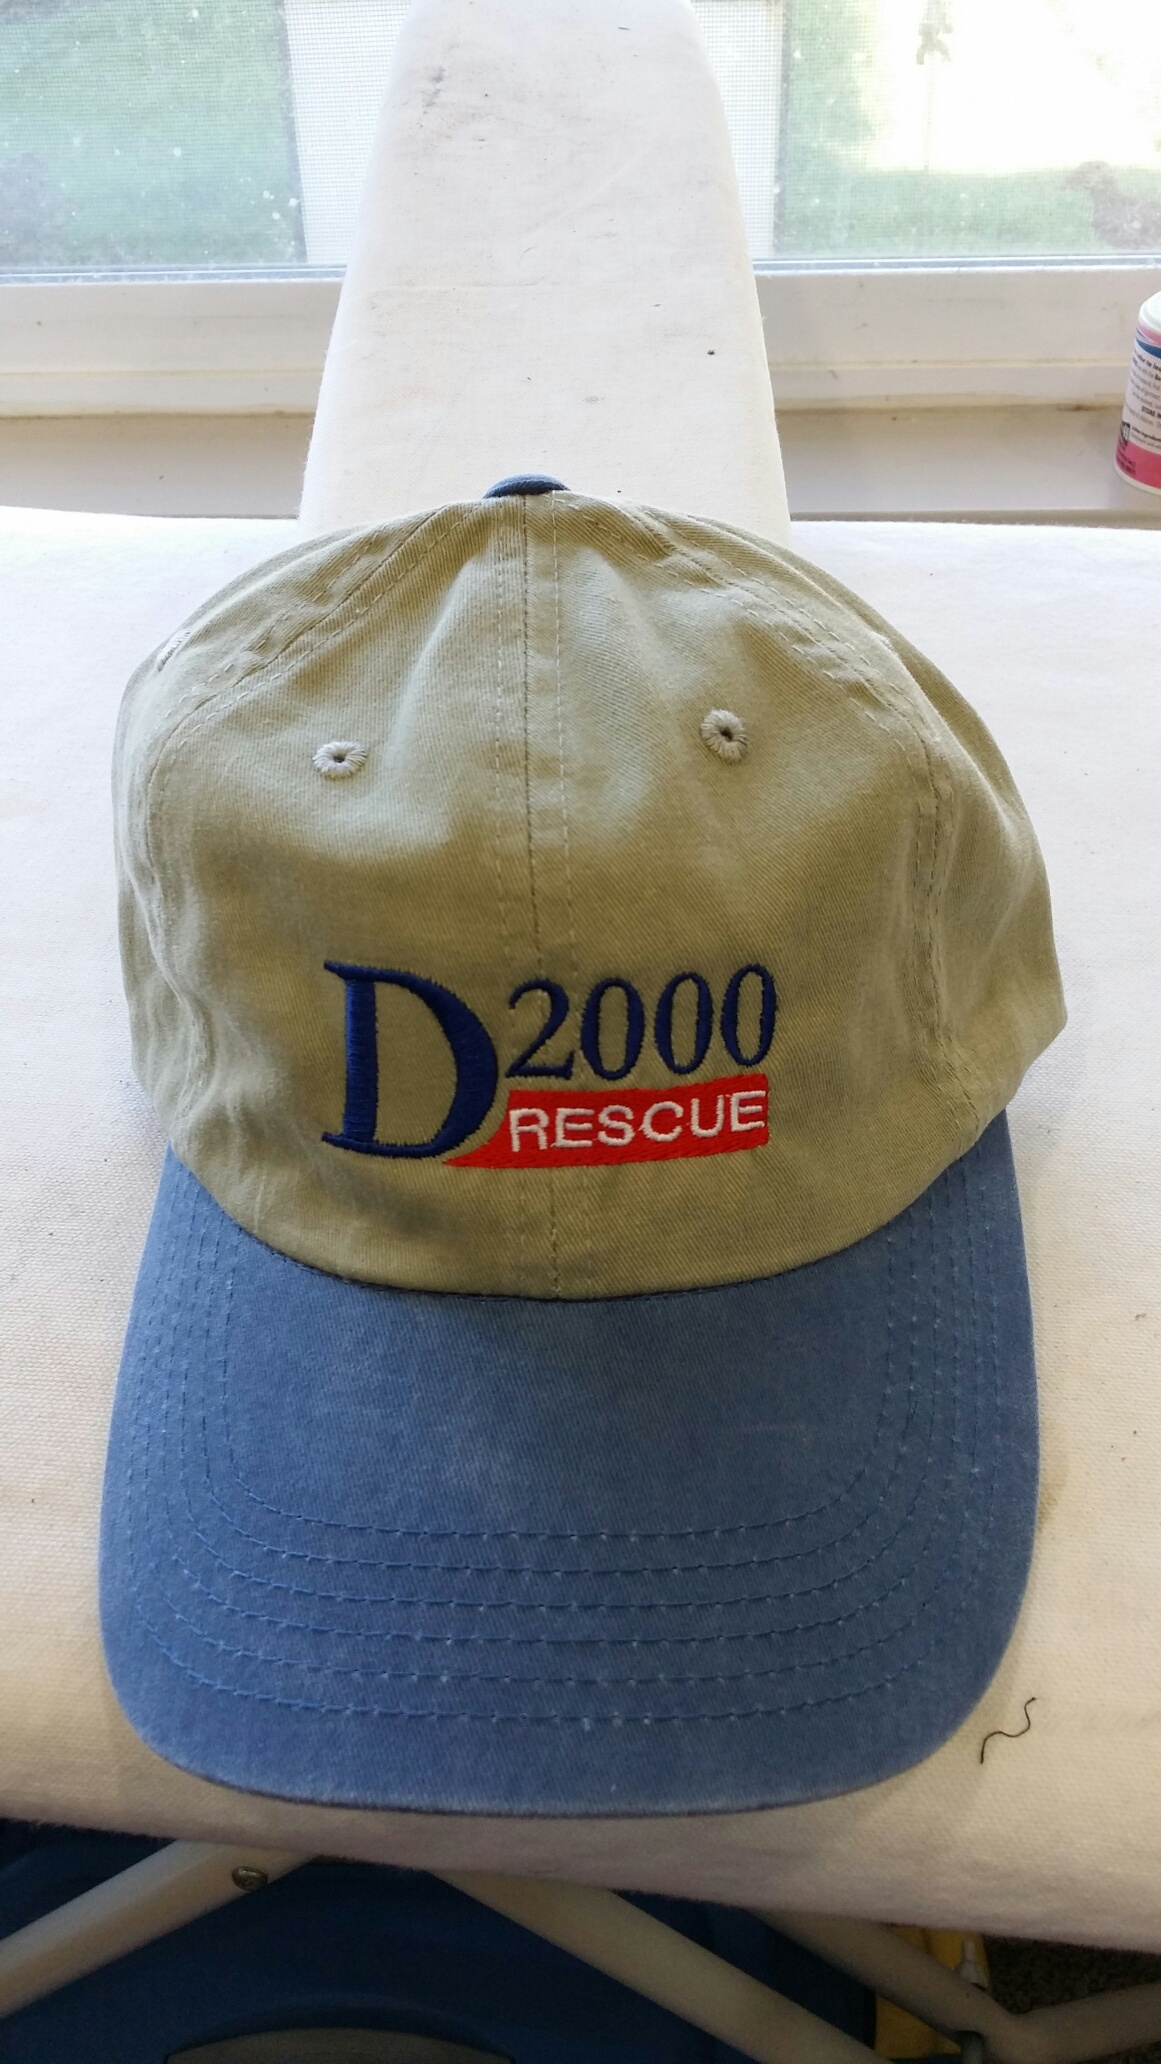 D2000 Safety